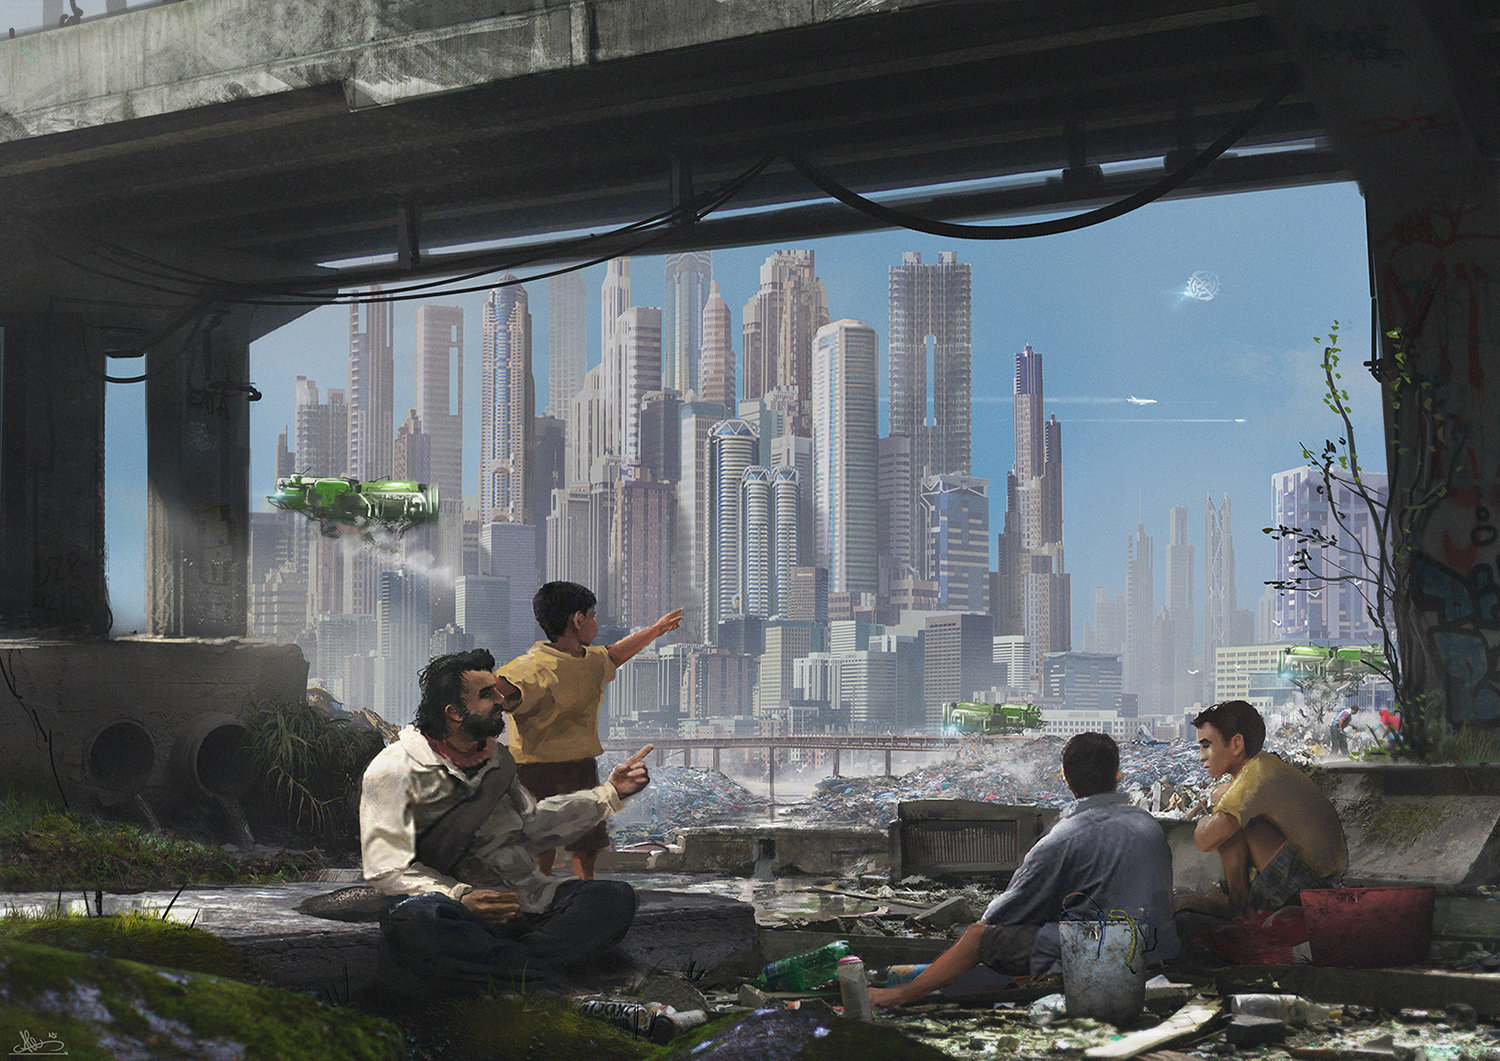 You can see a father trying to explain to his sons what are they looking at the sky, space stations and supersonic planes. things that contrast with the poverty world in which they live.